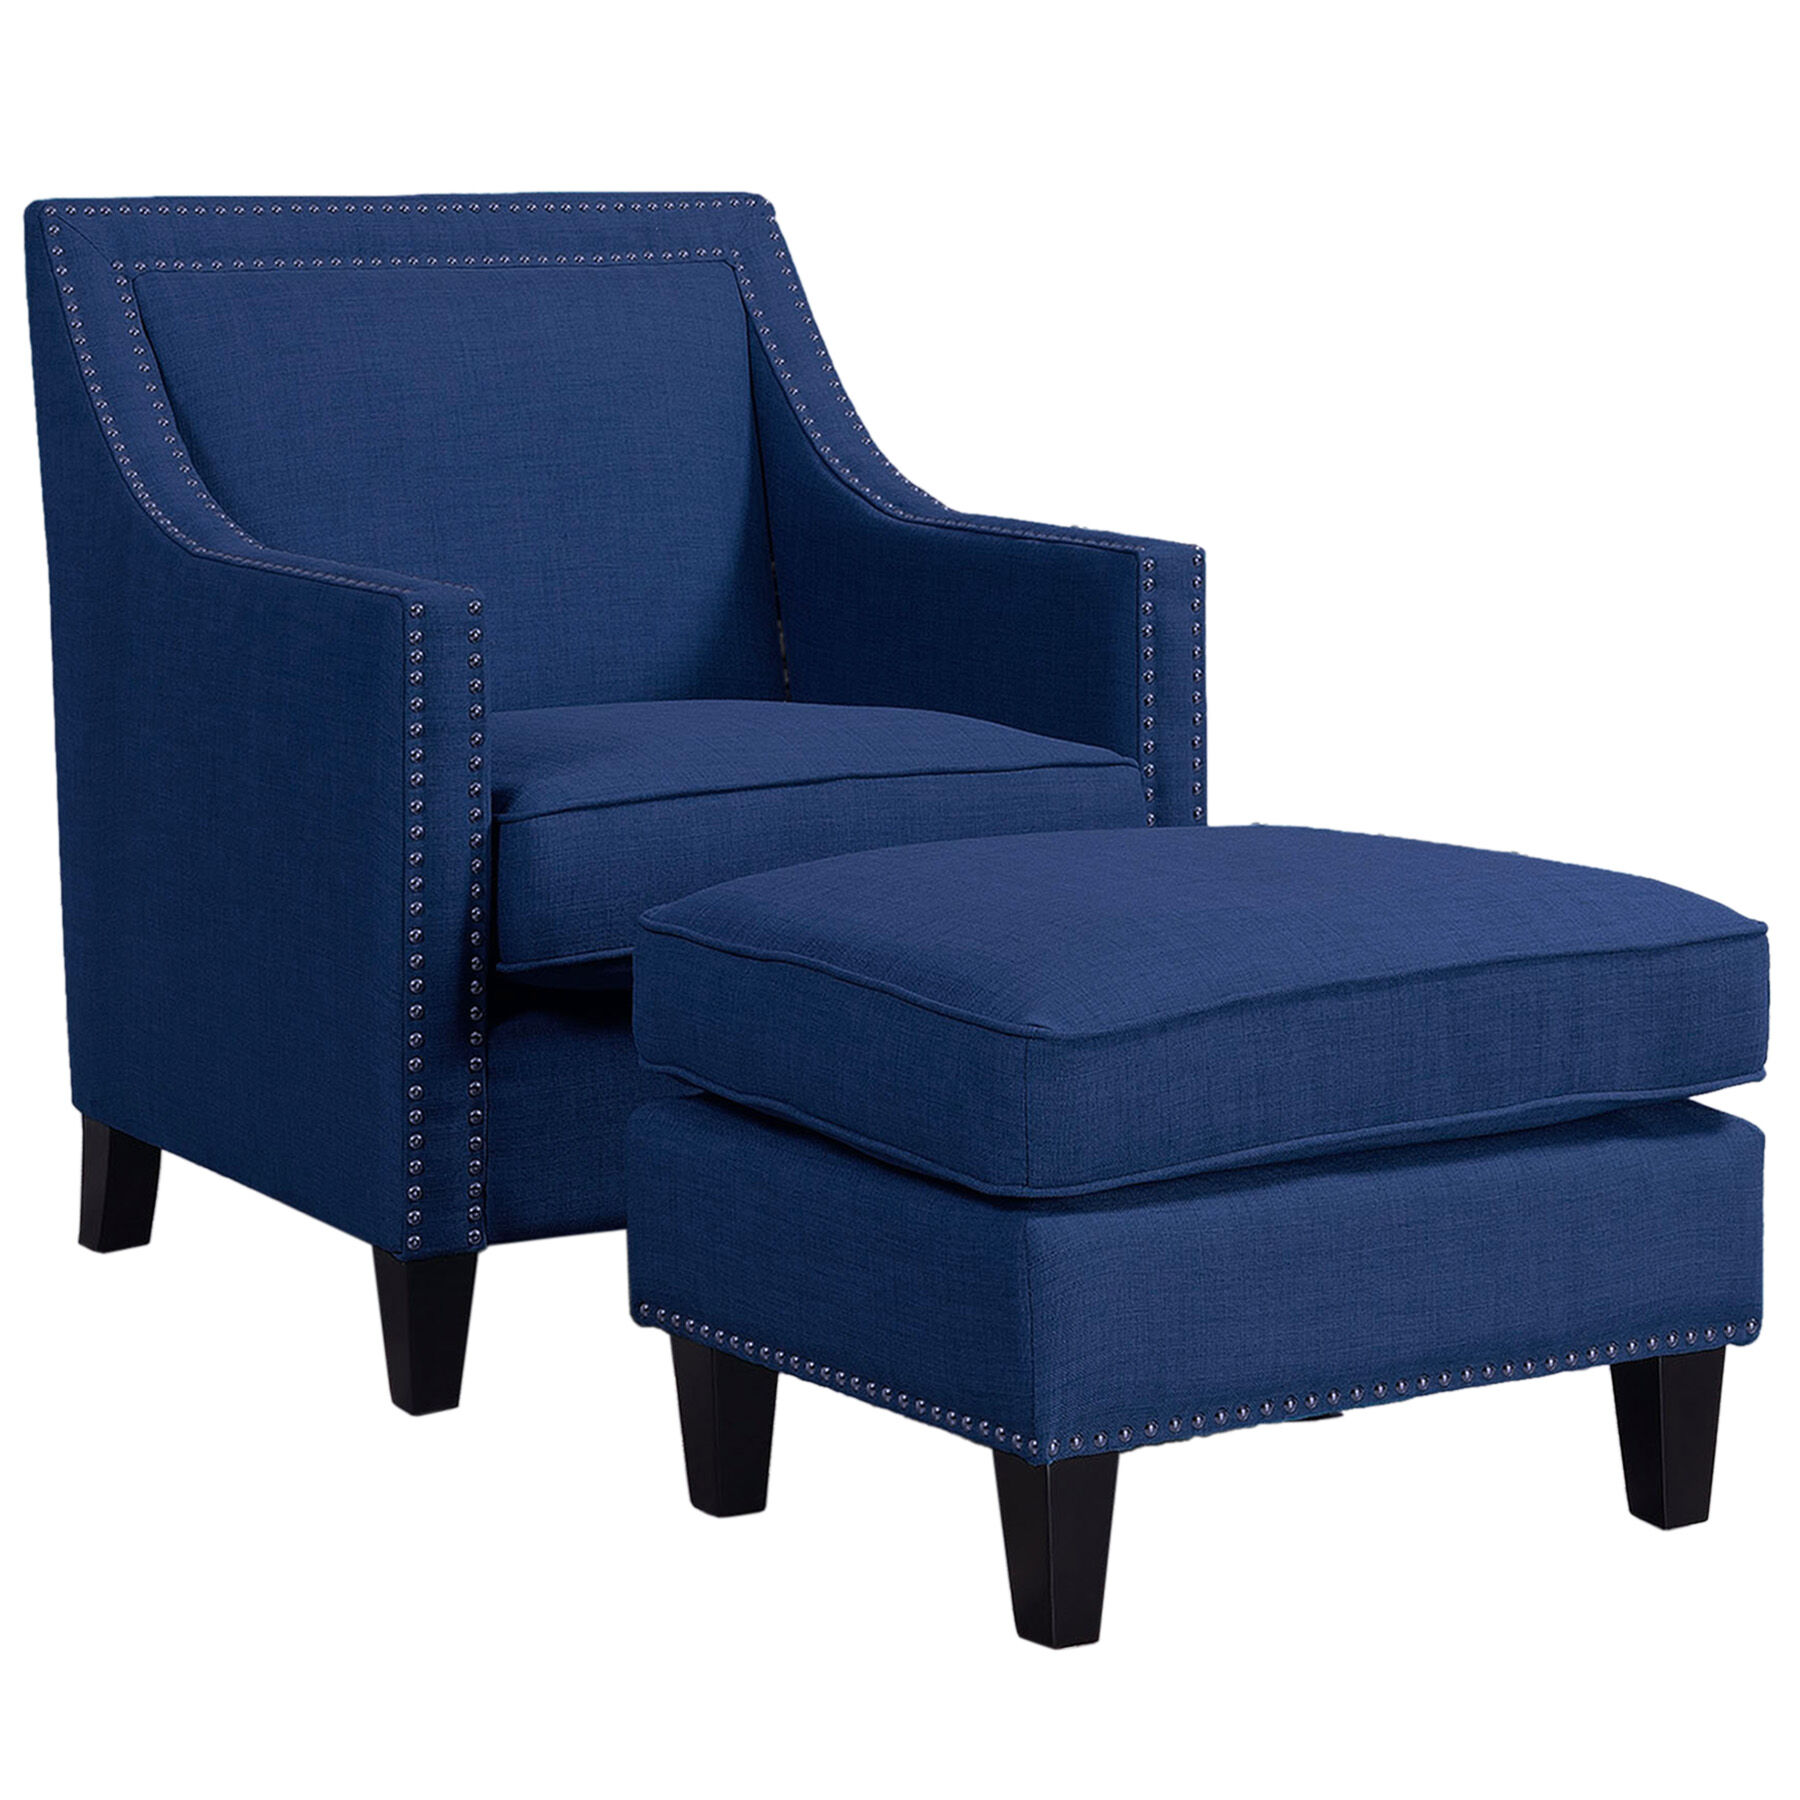 Dahlia 3 Seat Leather Sofa Erica Studded Chair Dark Blue At Home